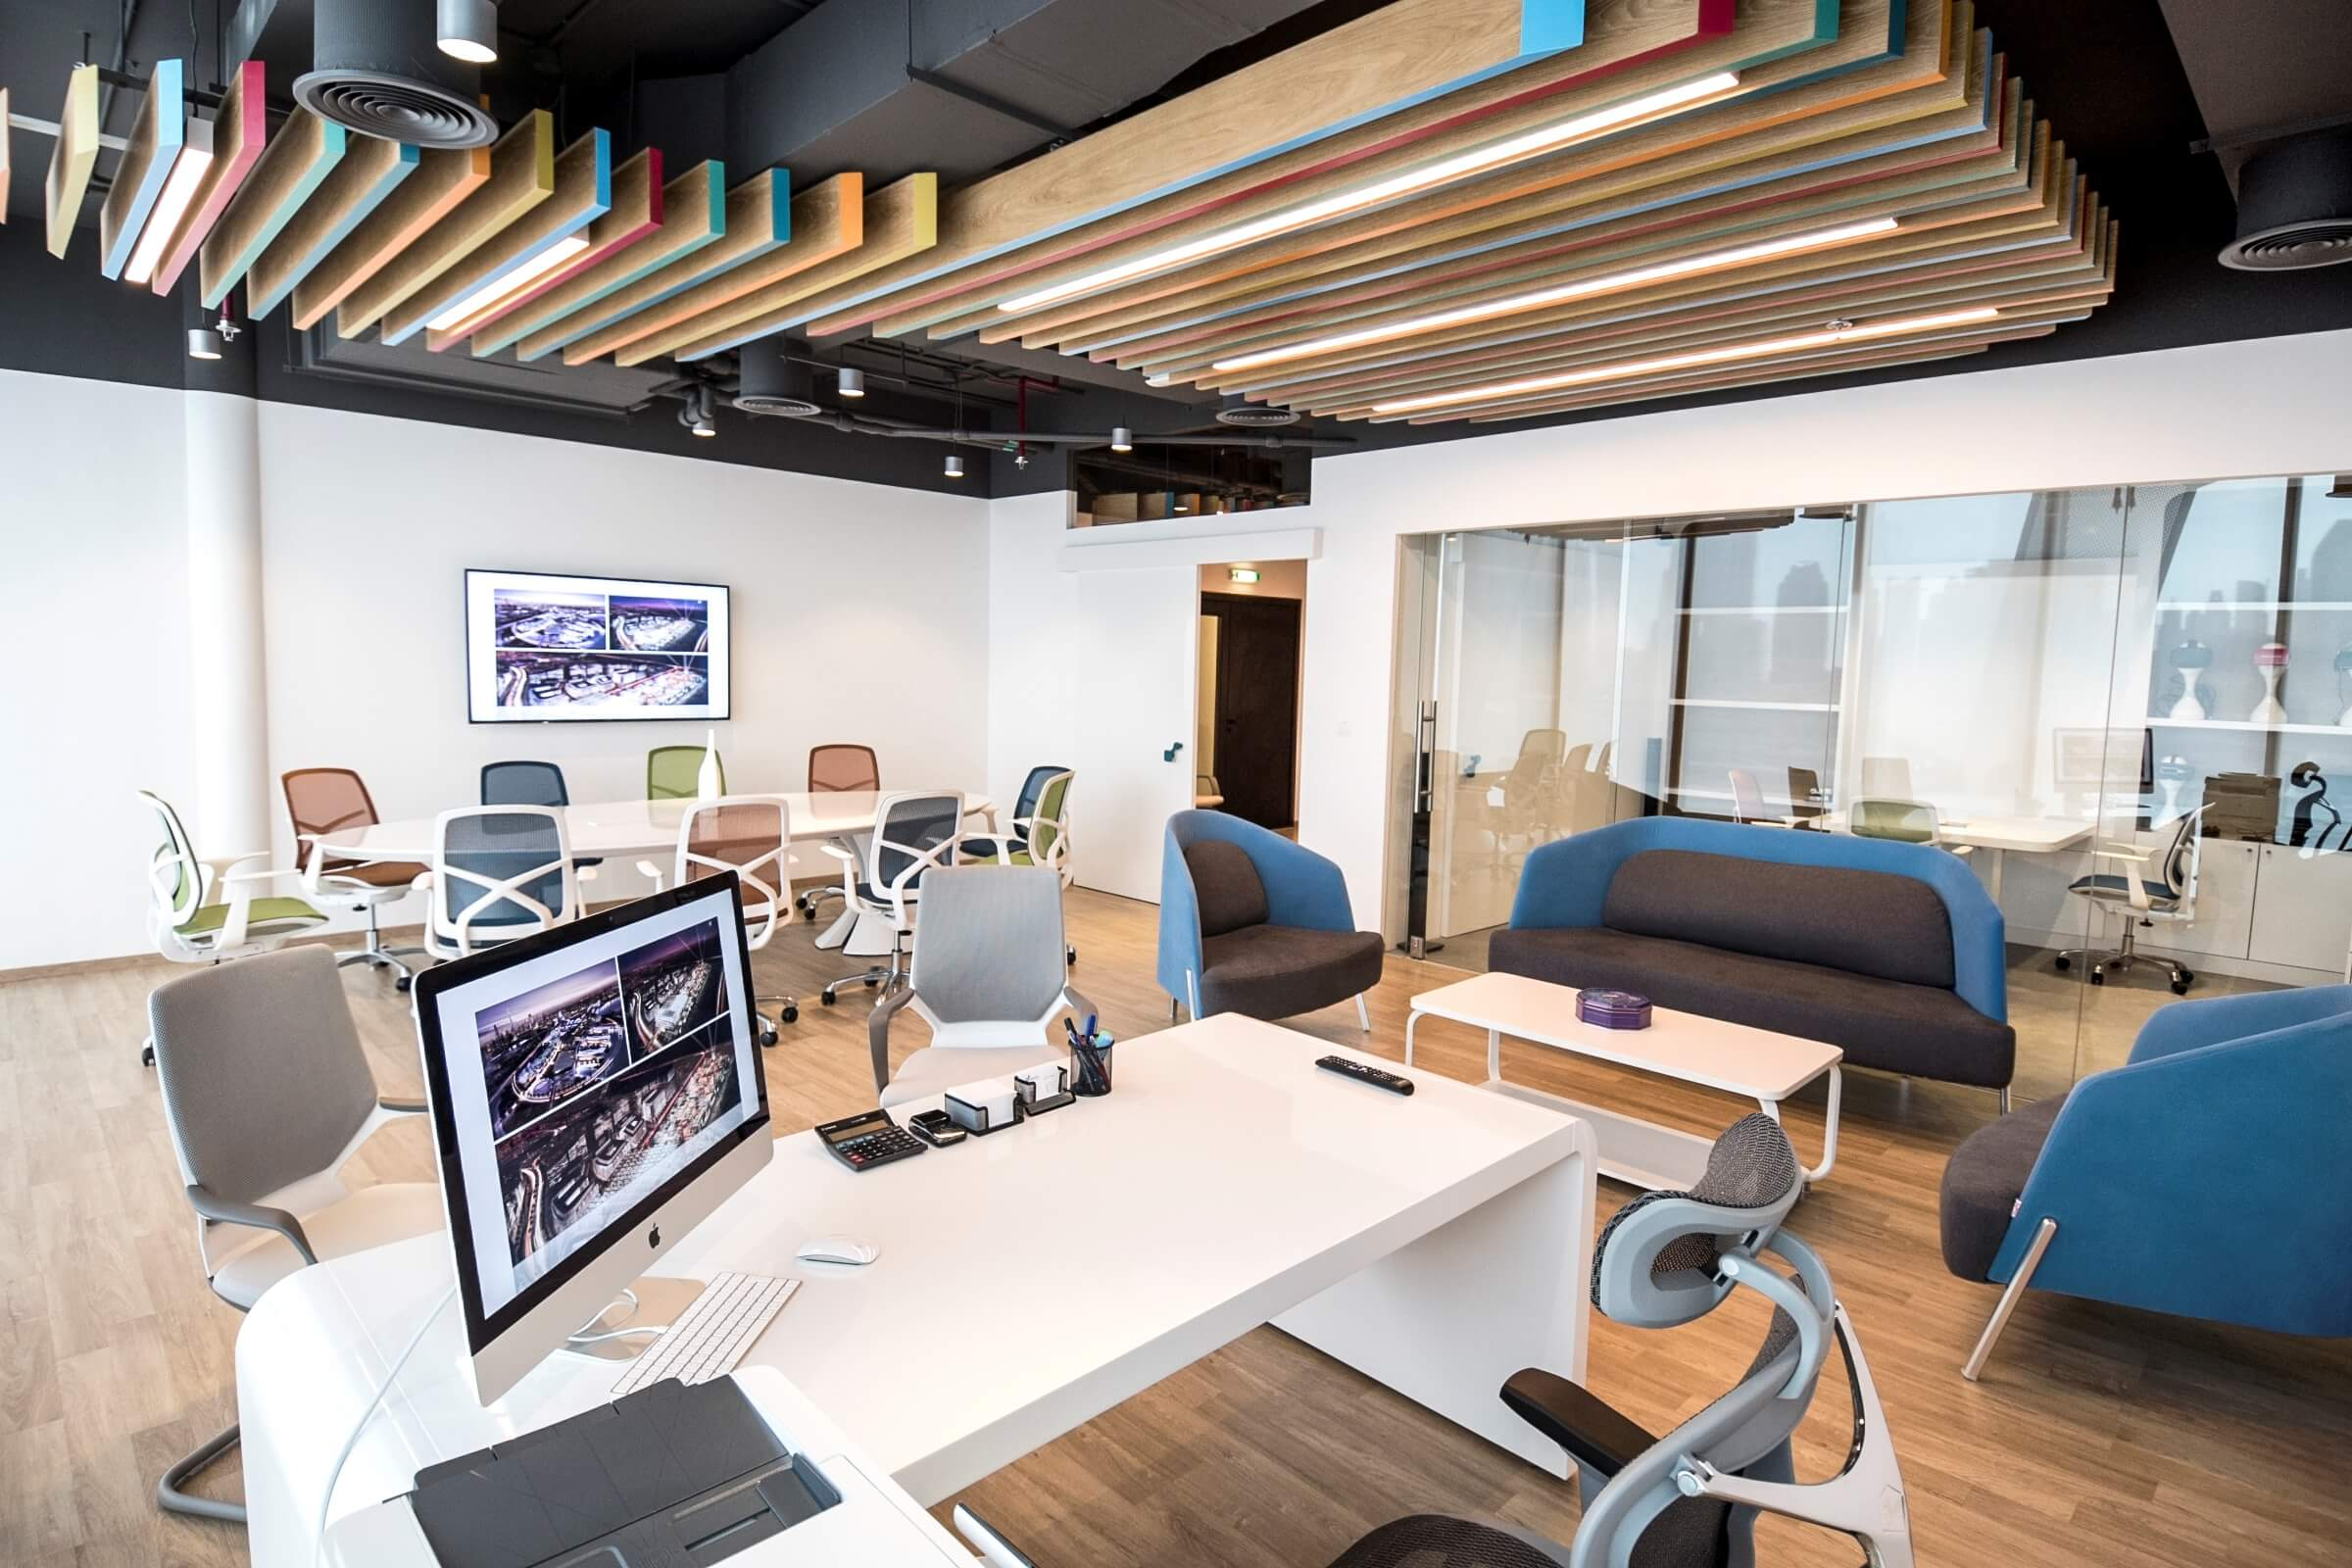 Ndigitec Inaugurates Its New Lounge At D3 Dubai Design District